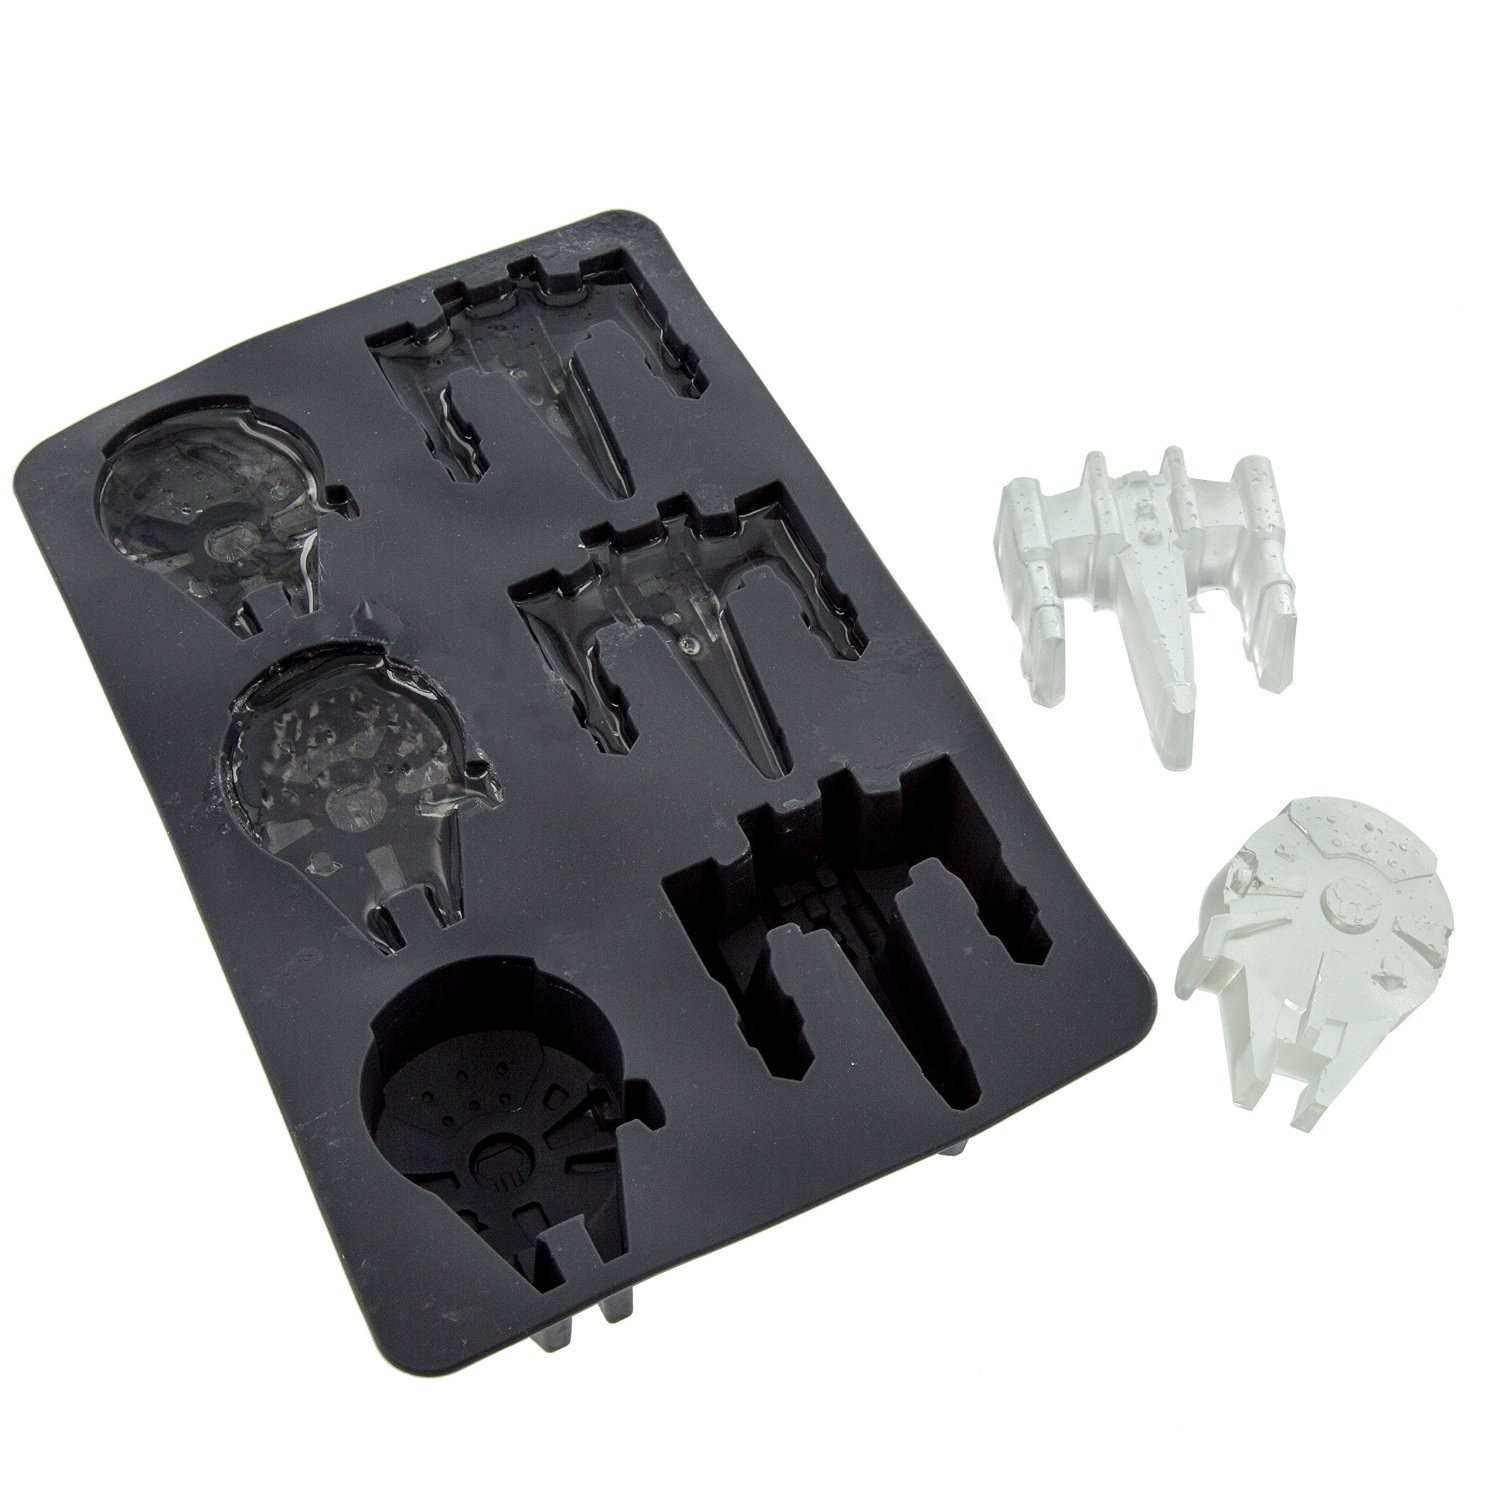 Star Wars X-Wing and Millennium Falcon Ice Cube Tray